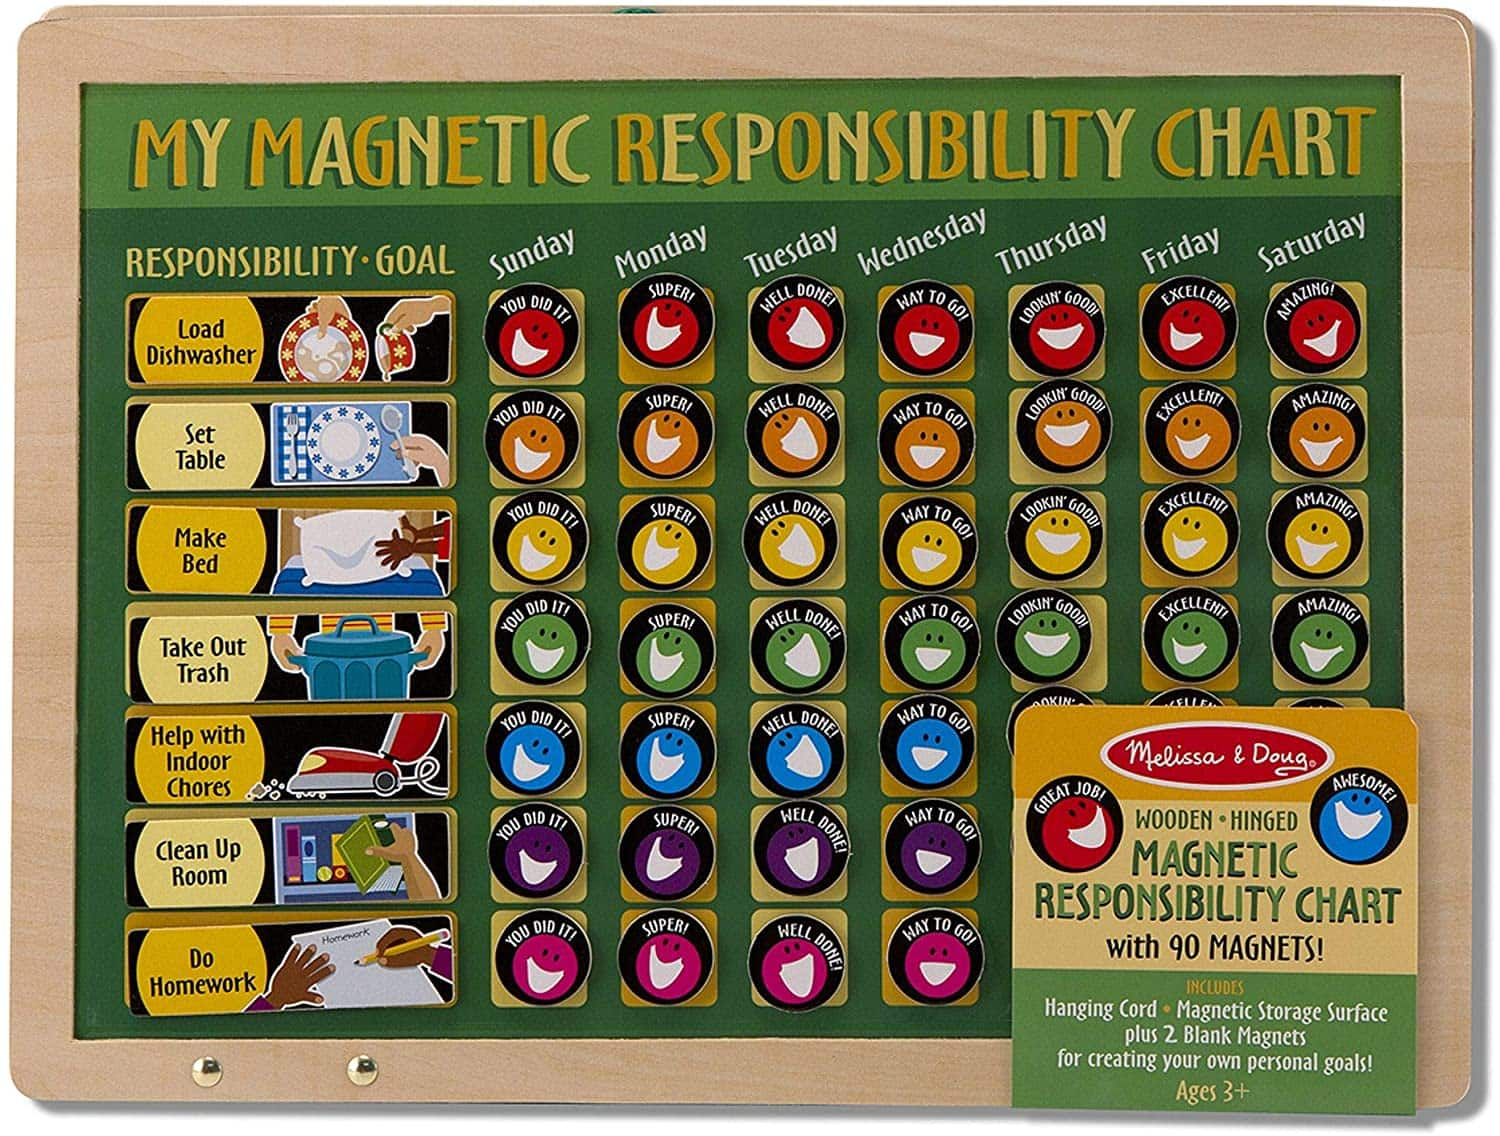 Melissa & Doug: Deluxe Wooden Magnetic Responsibility Chart $10, Magnetic Responsibility Chart $10 + Free Shipping w/ Prime or on $25+